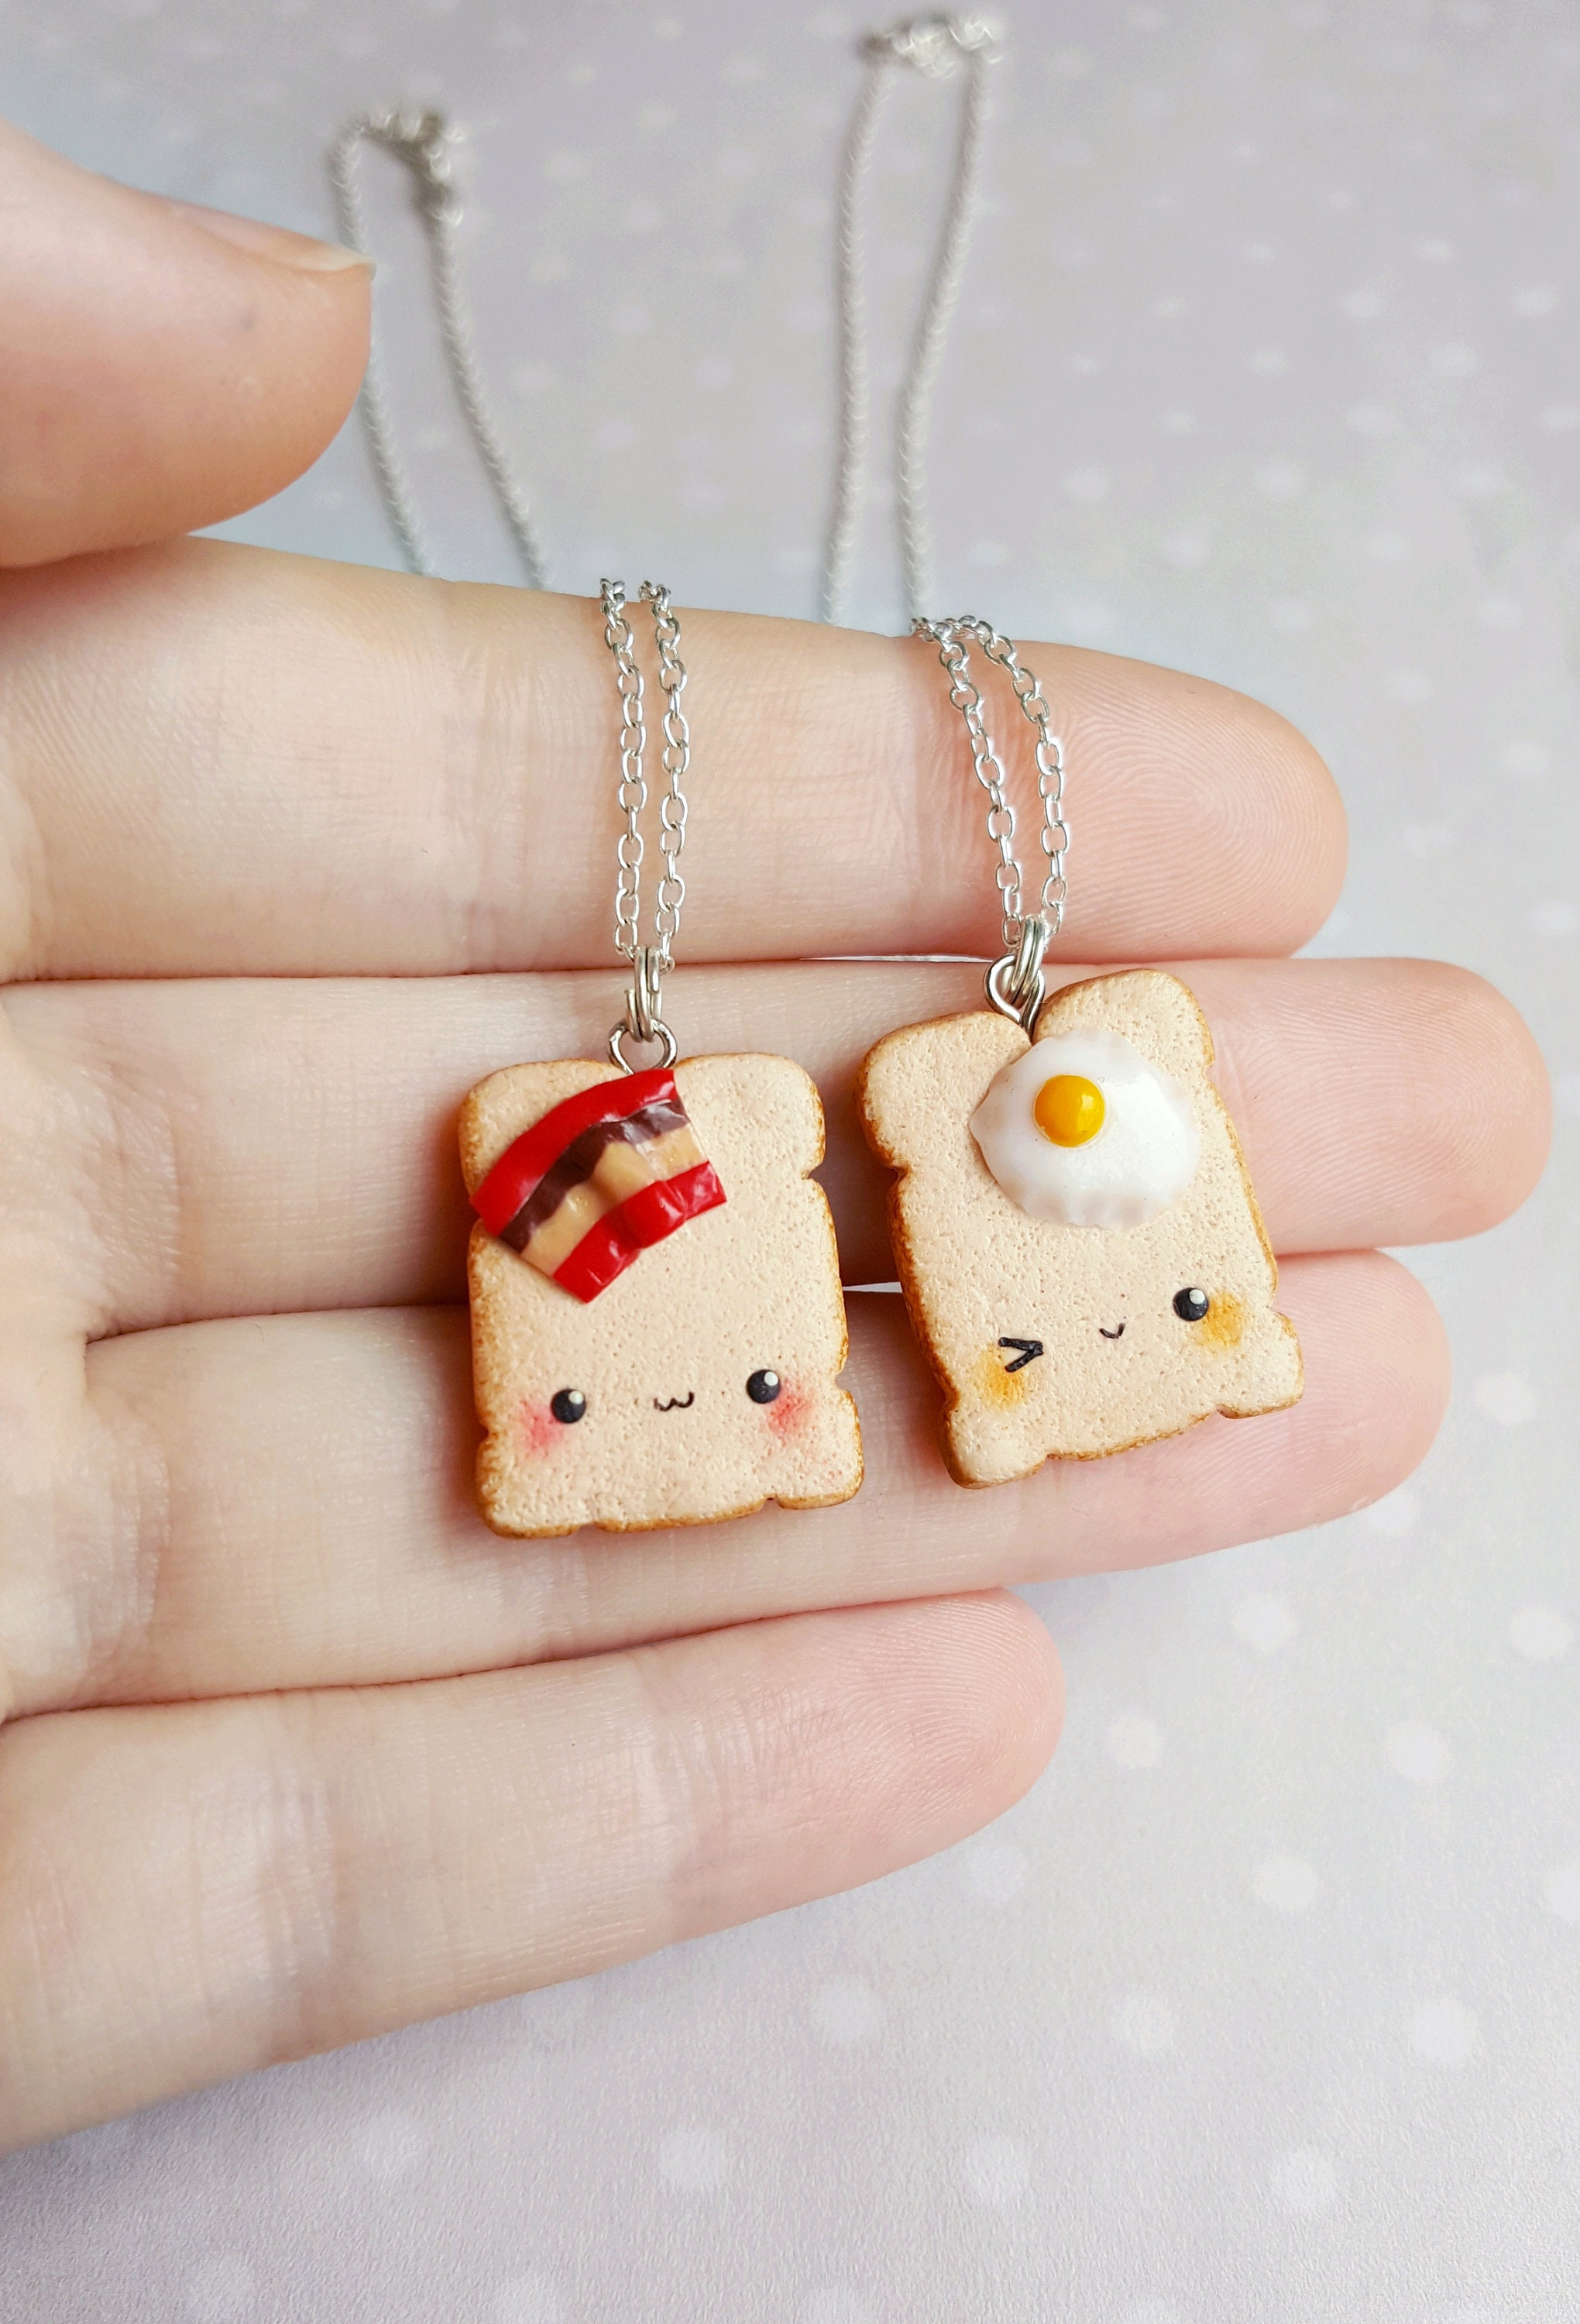 Keychain and Necklace Foodie Gift Food Charms Food Jewelry Food Keychain Bacon Cheese Fry Charm Food Necklace